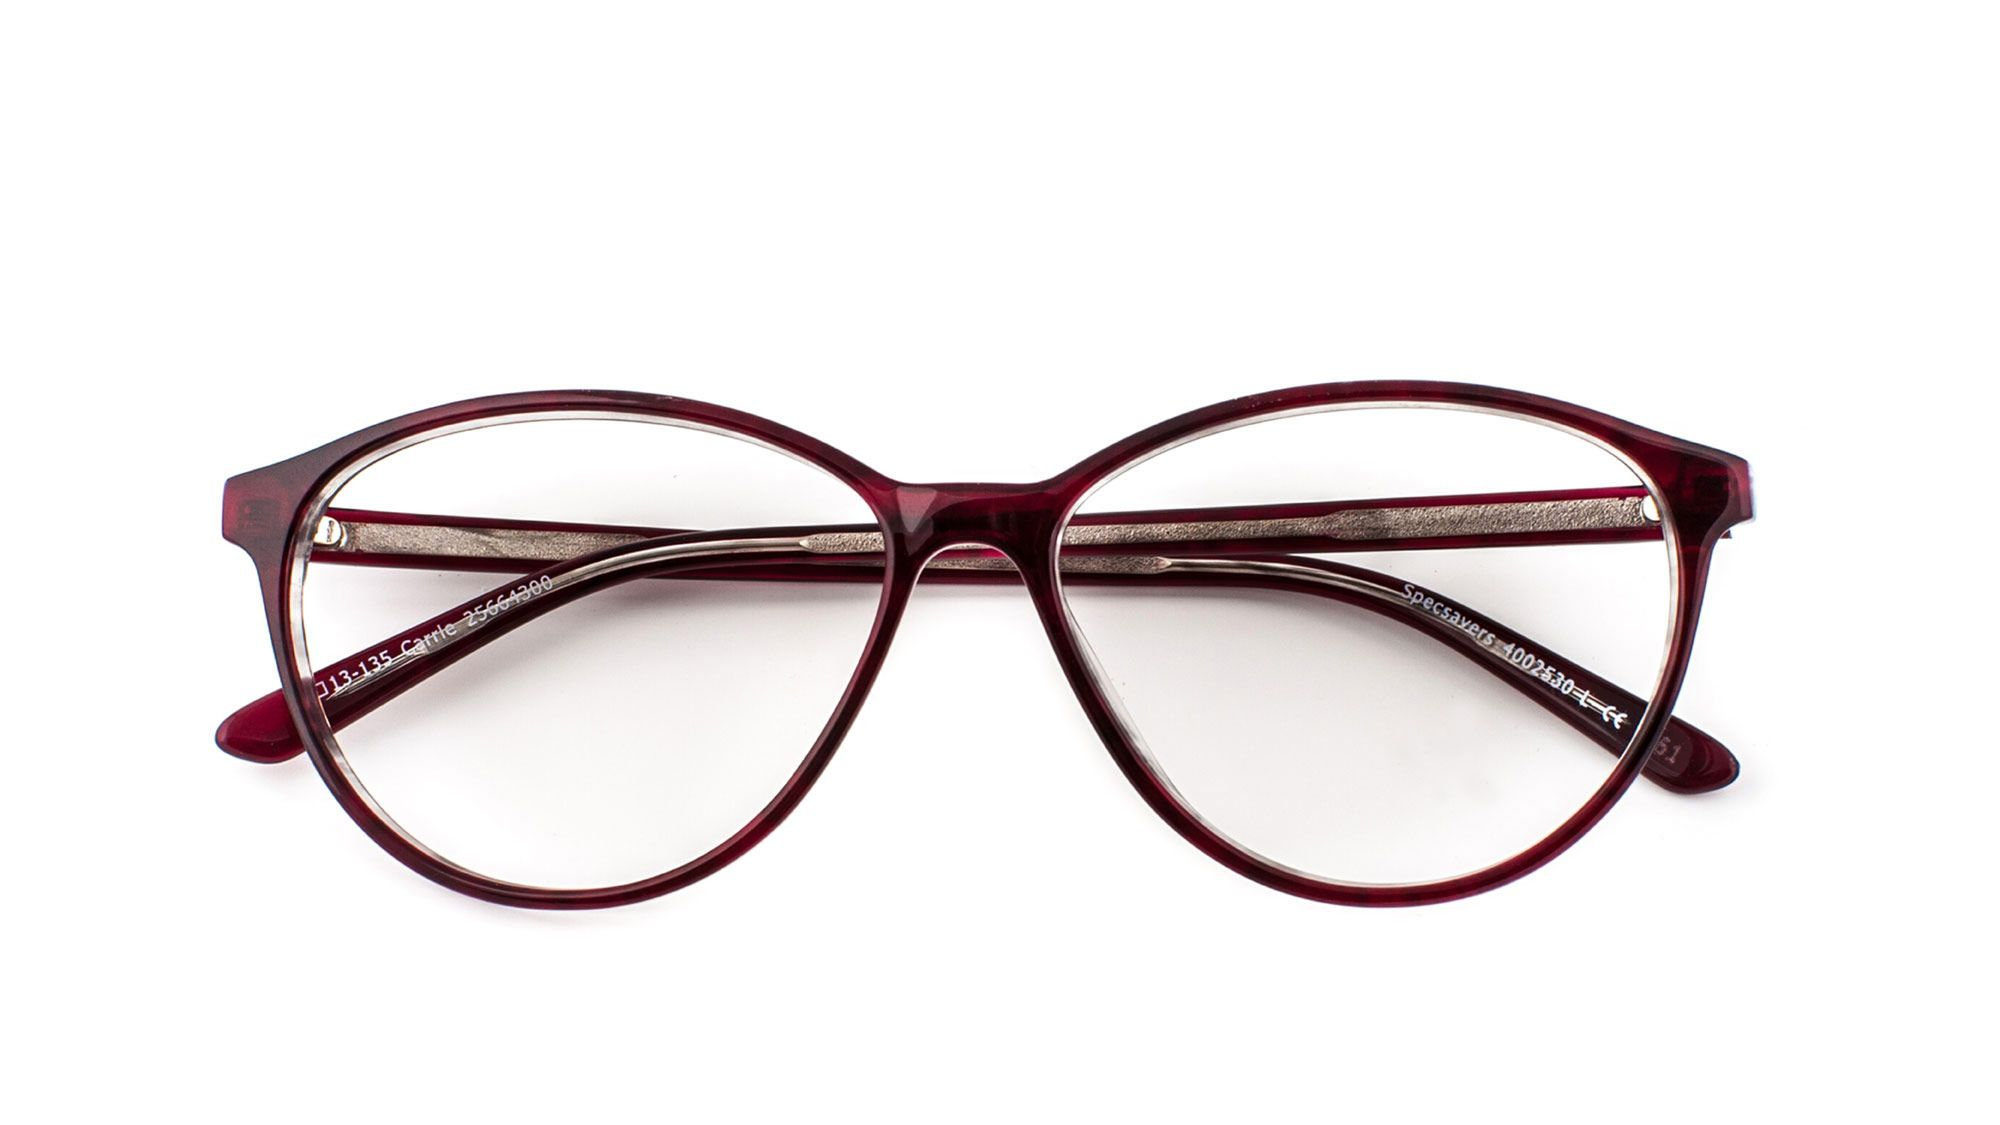 CARRIE Glasses by Specsavers | Specsavers UK £69 | | GLASSES ...